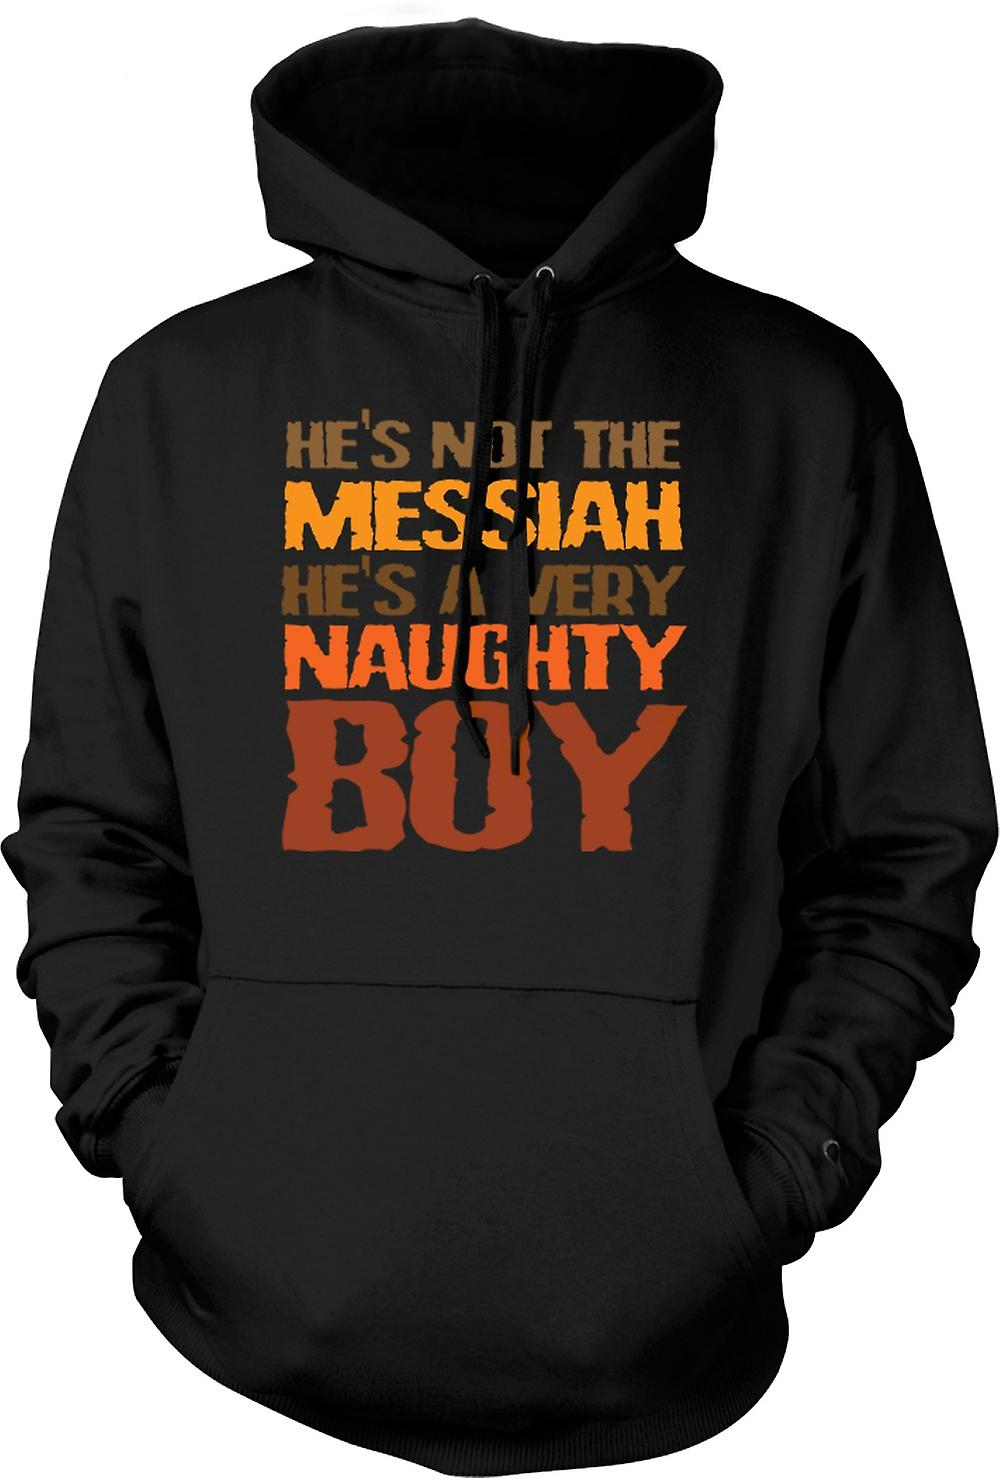 Mens Hoodie - He`s not the messiah, he`s a very naughty boy - Quote